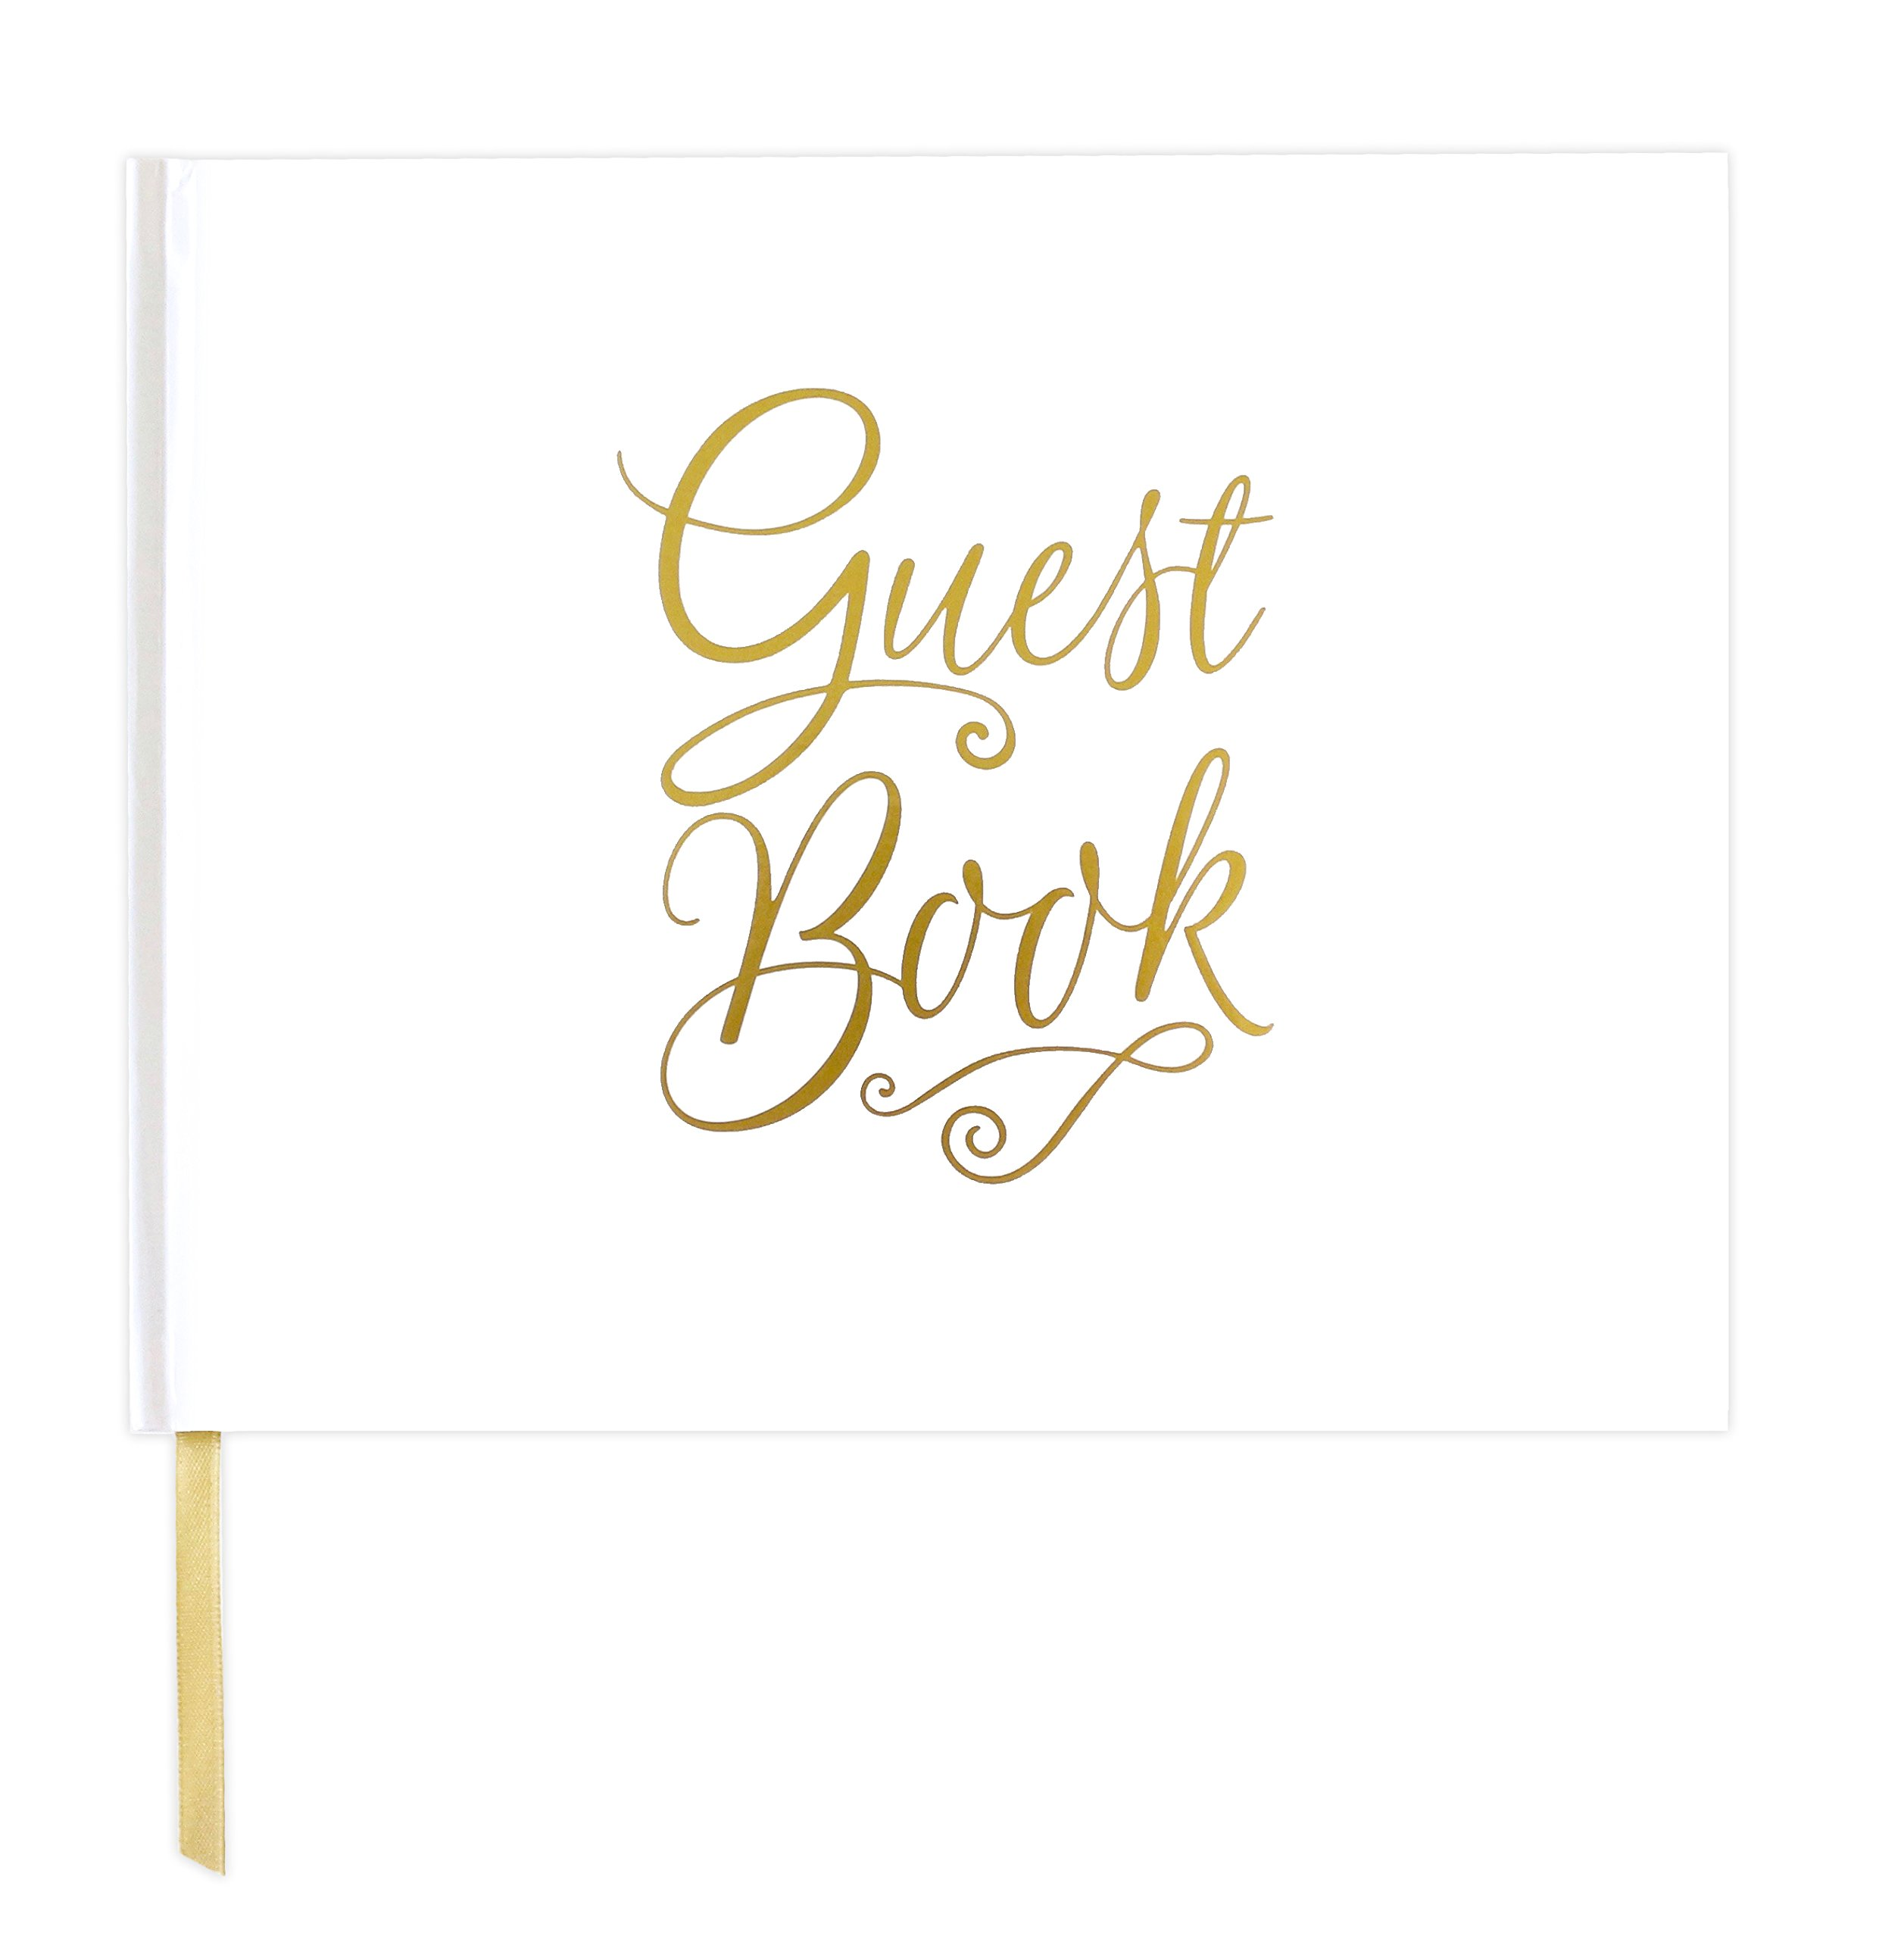 bloom daily planners Wedding Guest Book (120 Pages) Guest Sign-in Book Guest Registry Planner Guestbook - White Cover with Gold Foil, Gilded Edges and Gold Page Marker Hardbound 7'' x 9'' - Classic by bloom daily planners